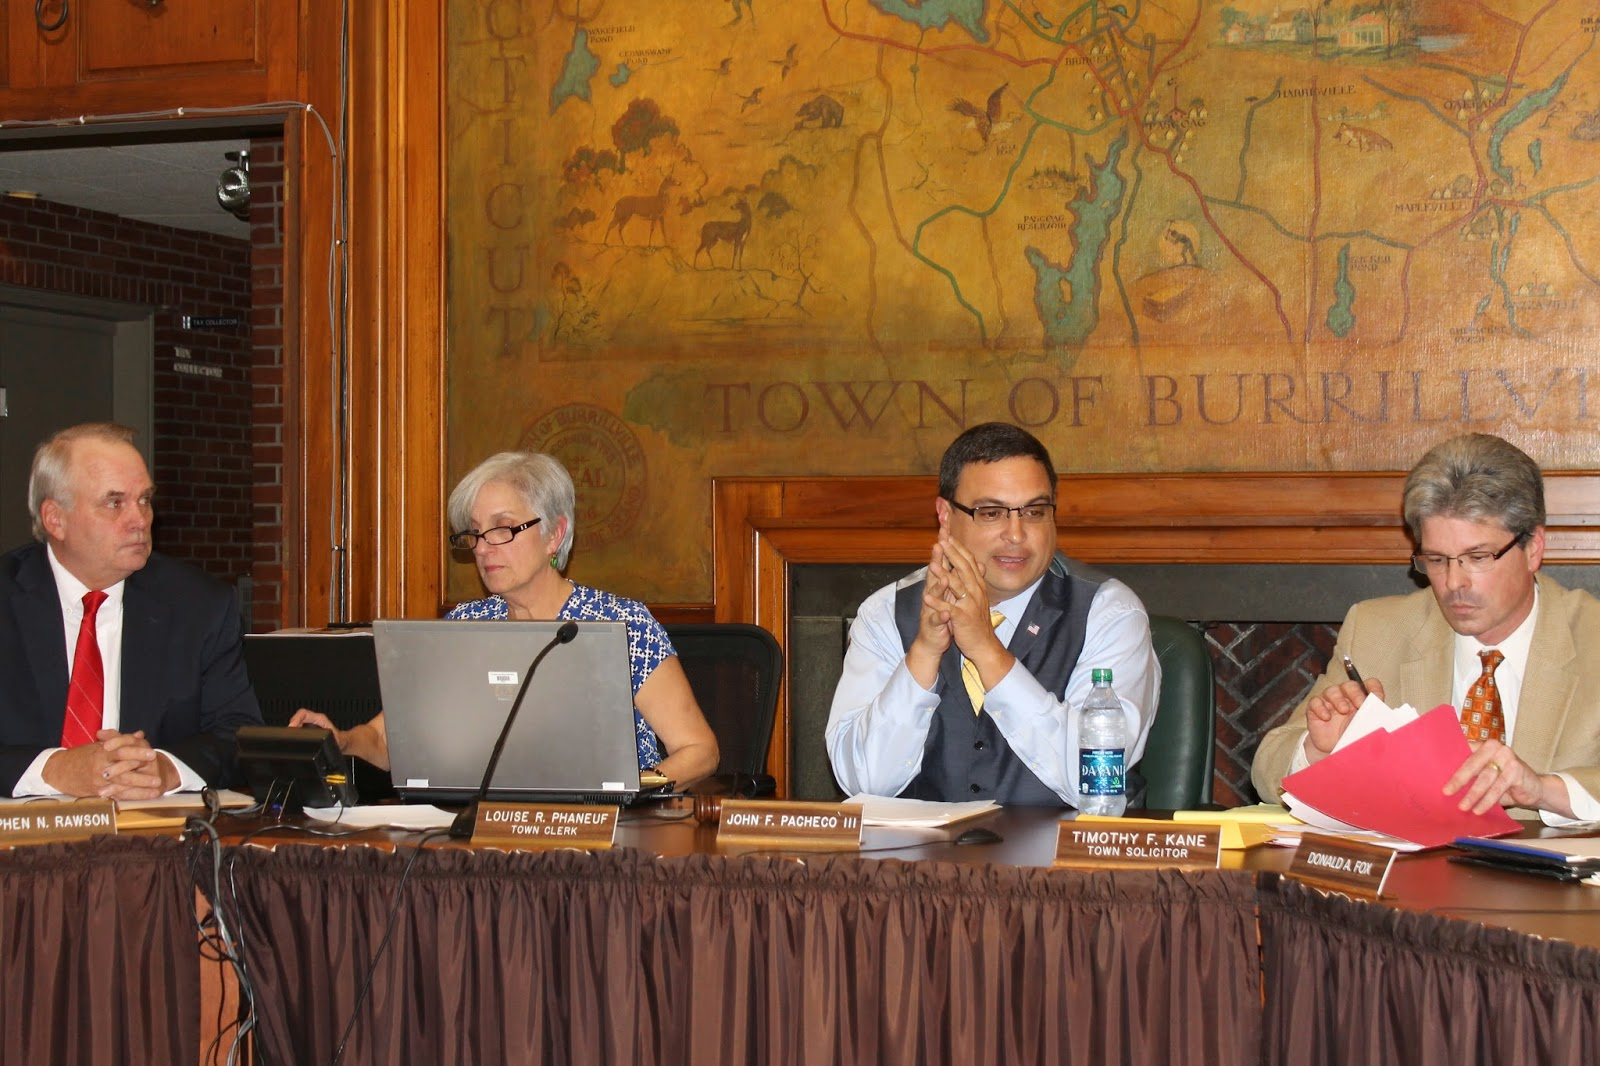 my northwest rhode island burrillville town council and john f pacheco iii takes the gavel for the next two years